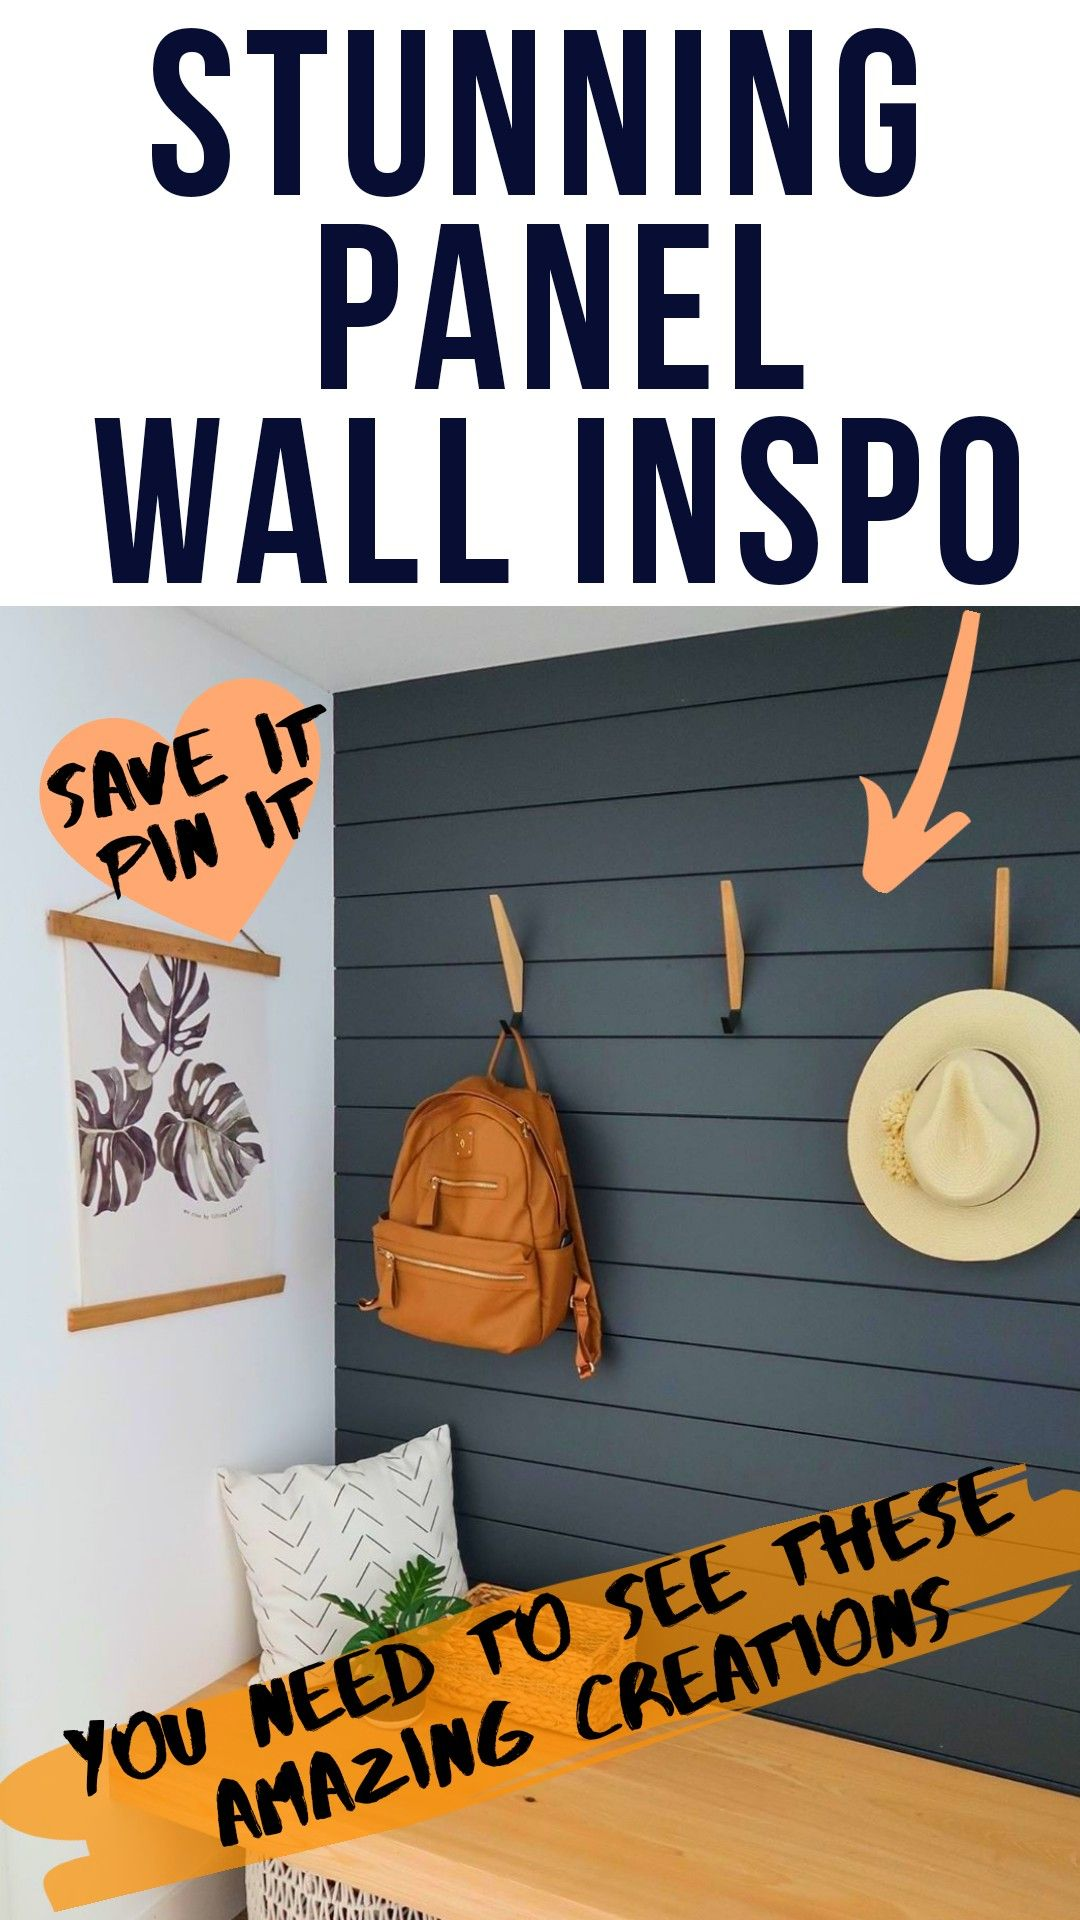 13 Wooden Panel Wall Ideas And Inspo in 2020 | Wood walls ...